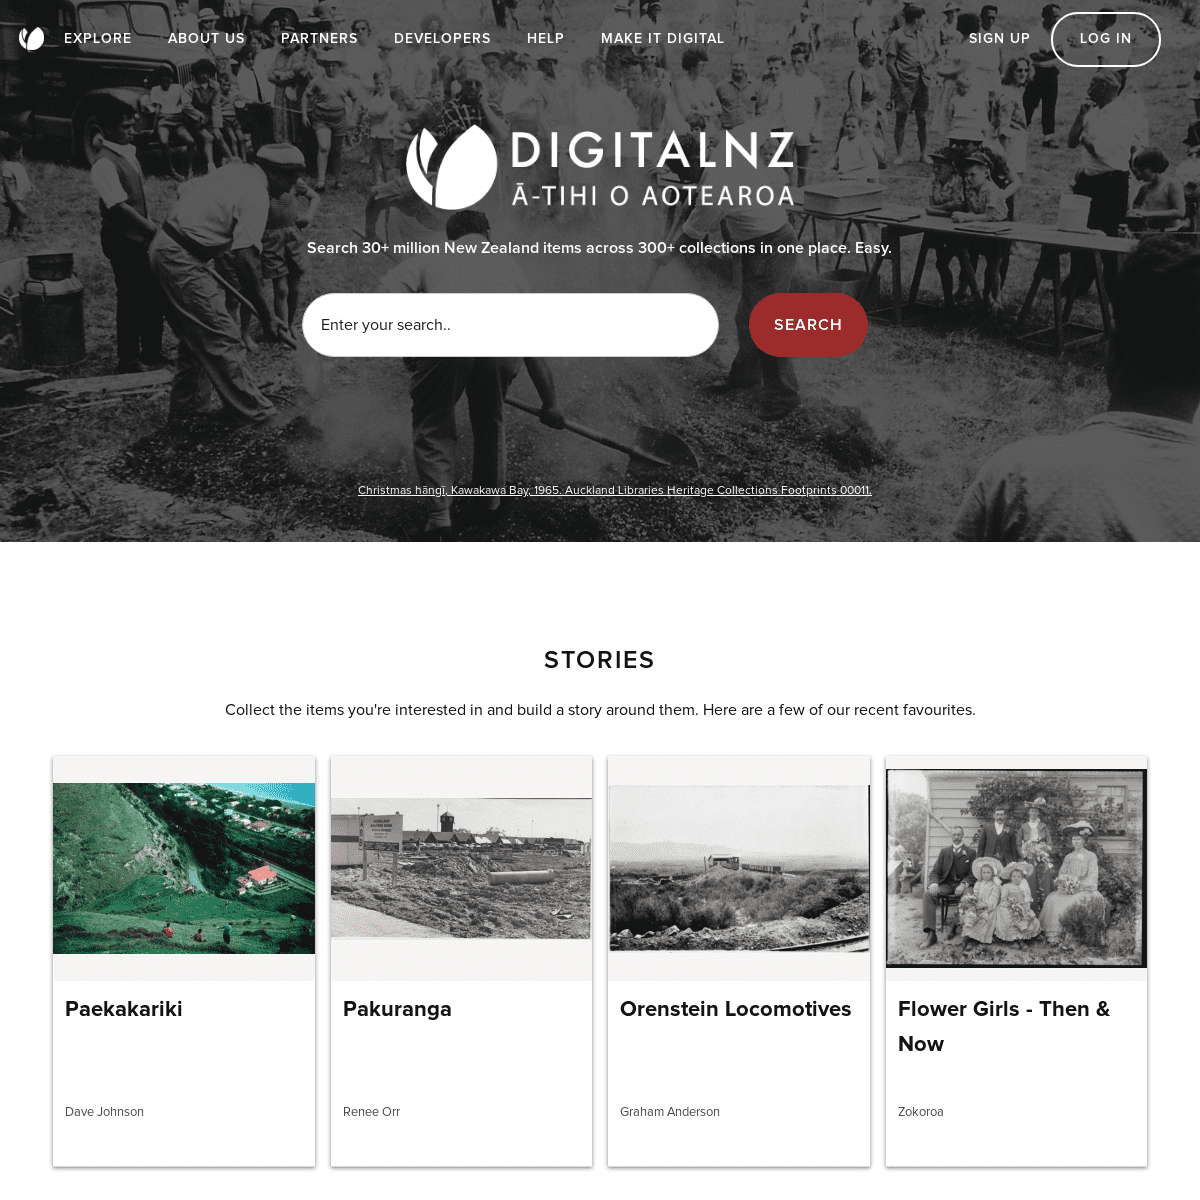 DigitalNZ - Search 30+ million New Zealand items across 300+ collections in one place. Easy.